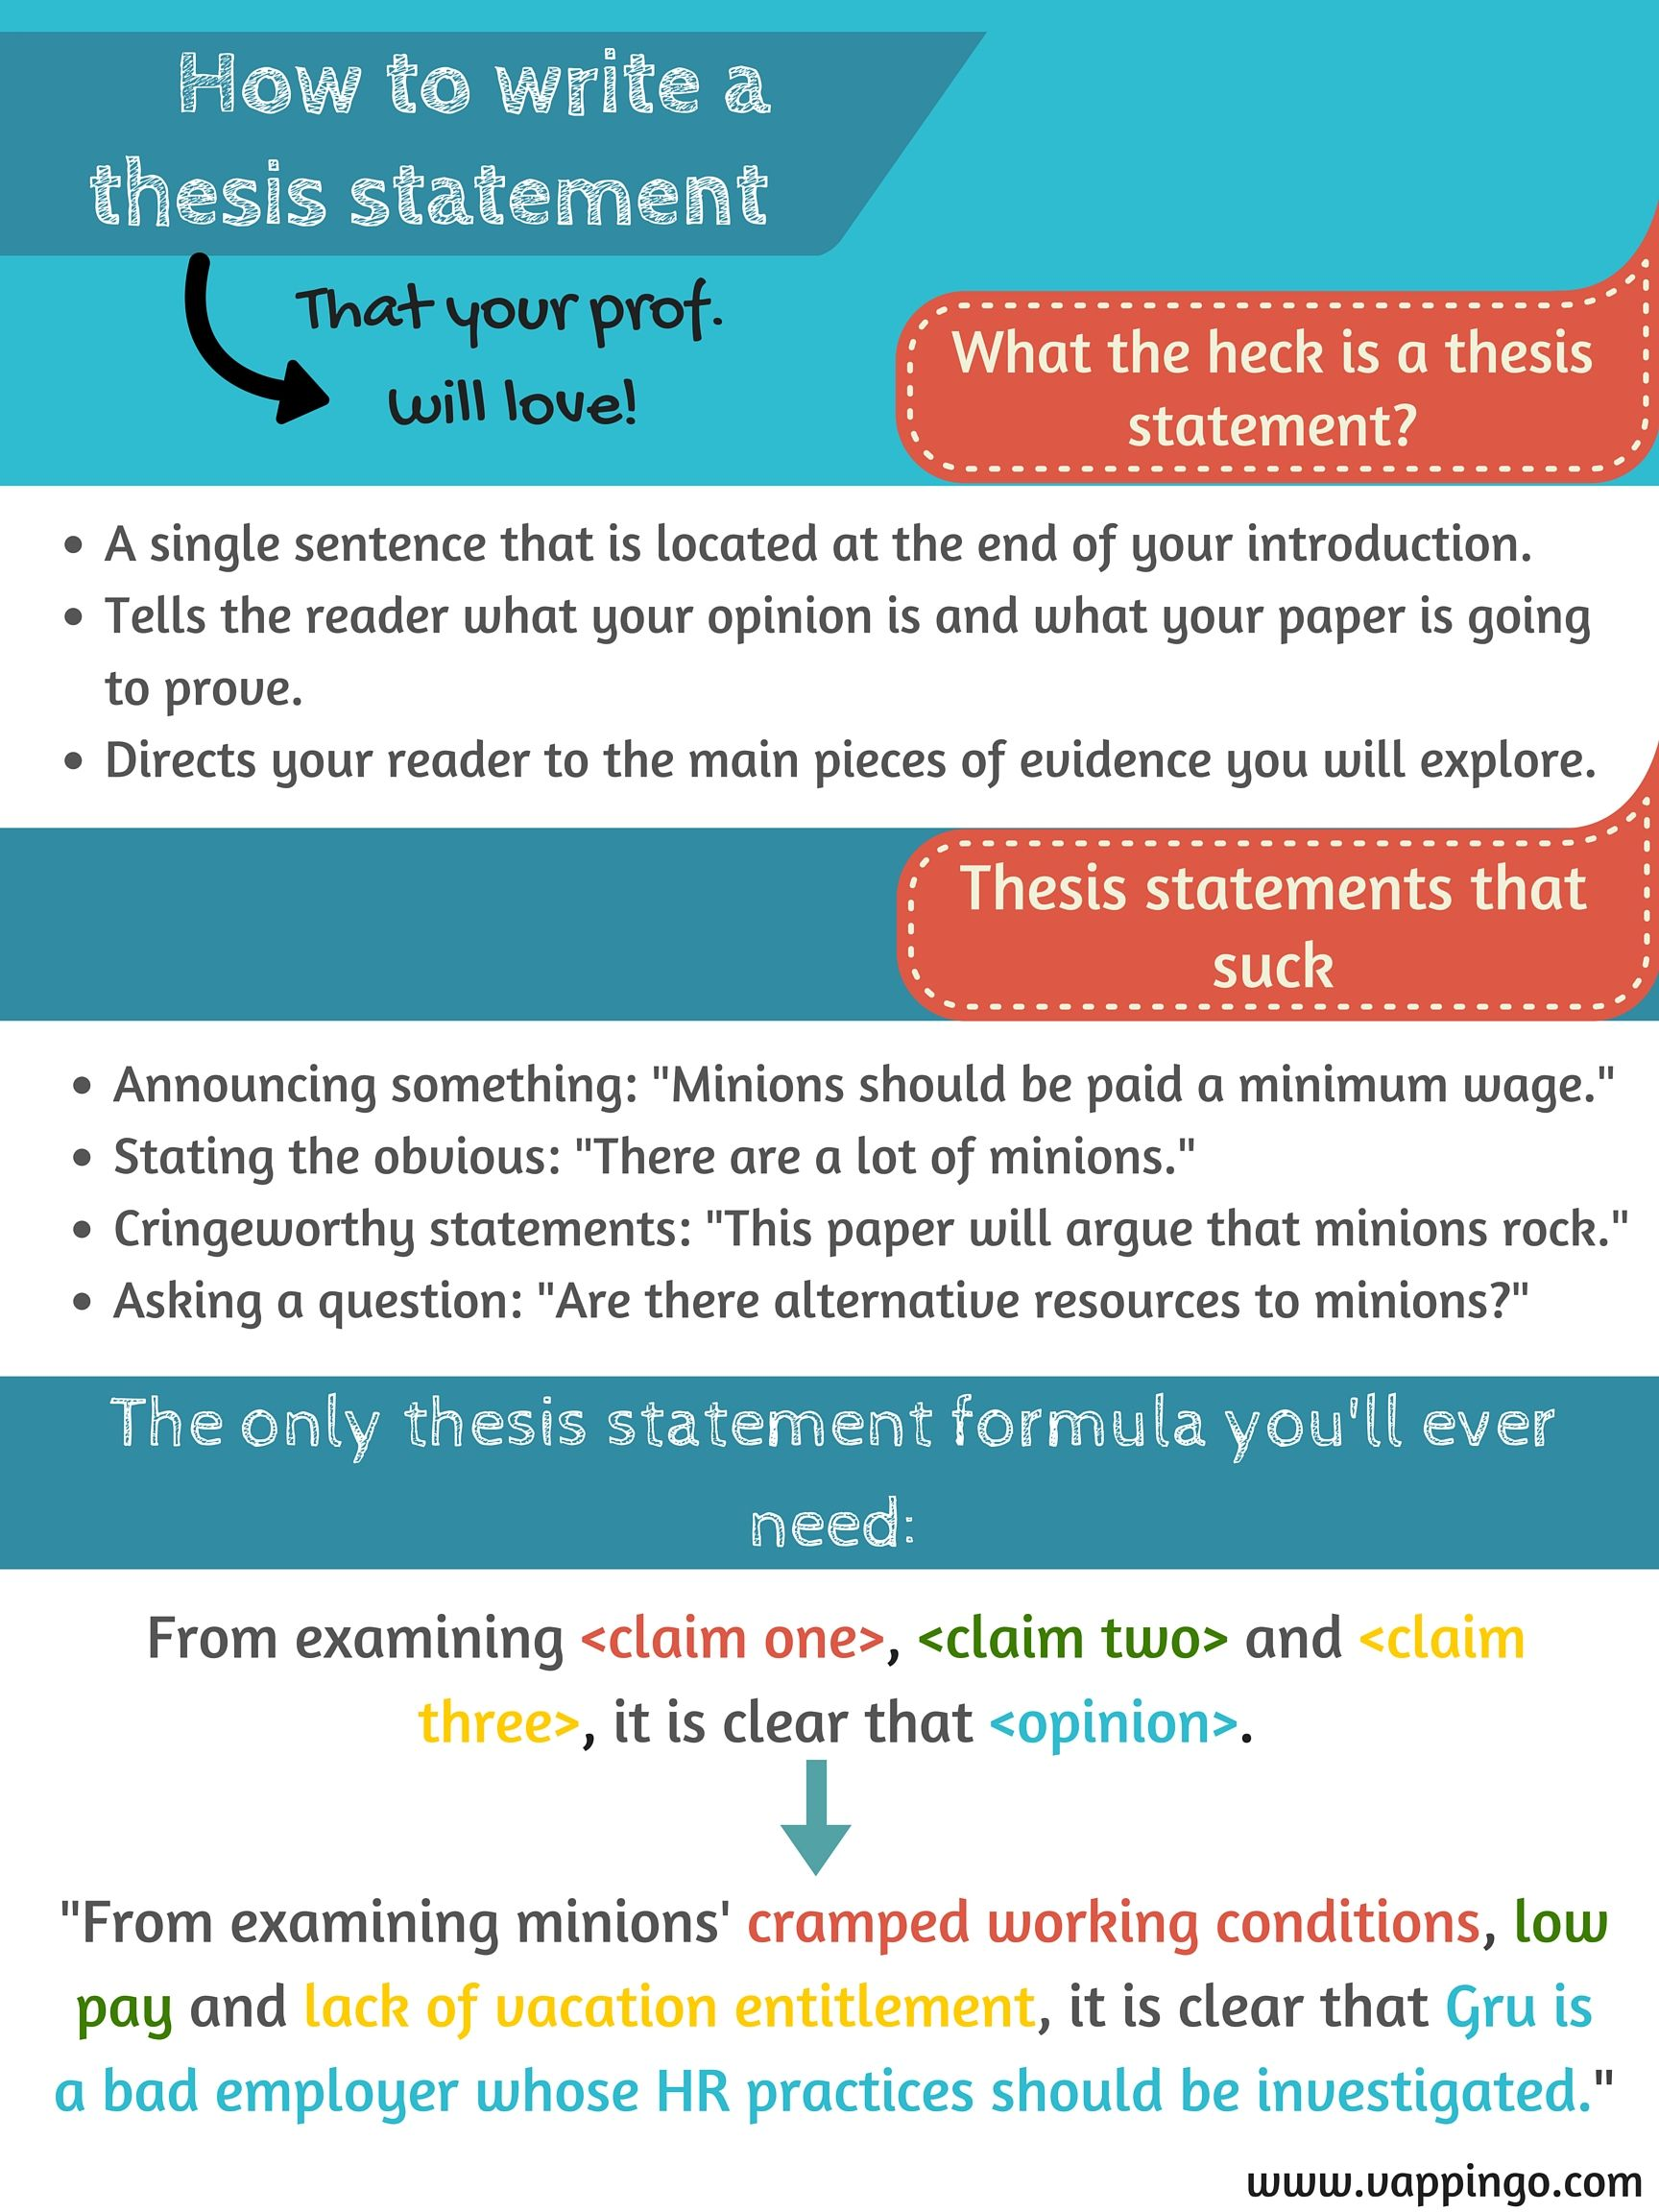 Pin By Vappingocom On Essay Writing Tips  Thesis Statement  Learn What Common Mistakes Students Make In Thesis Writing  How To Create  A Mistake Free Thesis Statement Place Order For Your Thesis